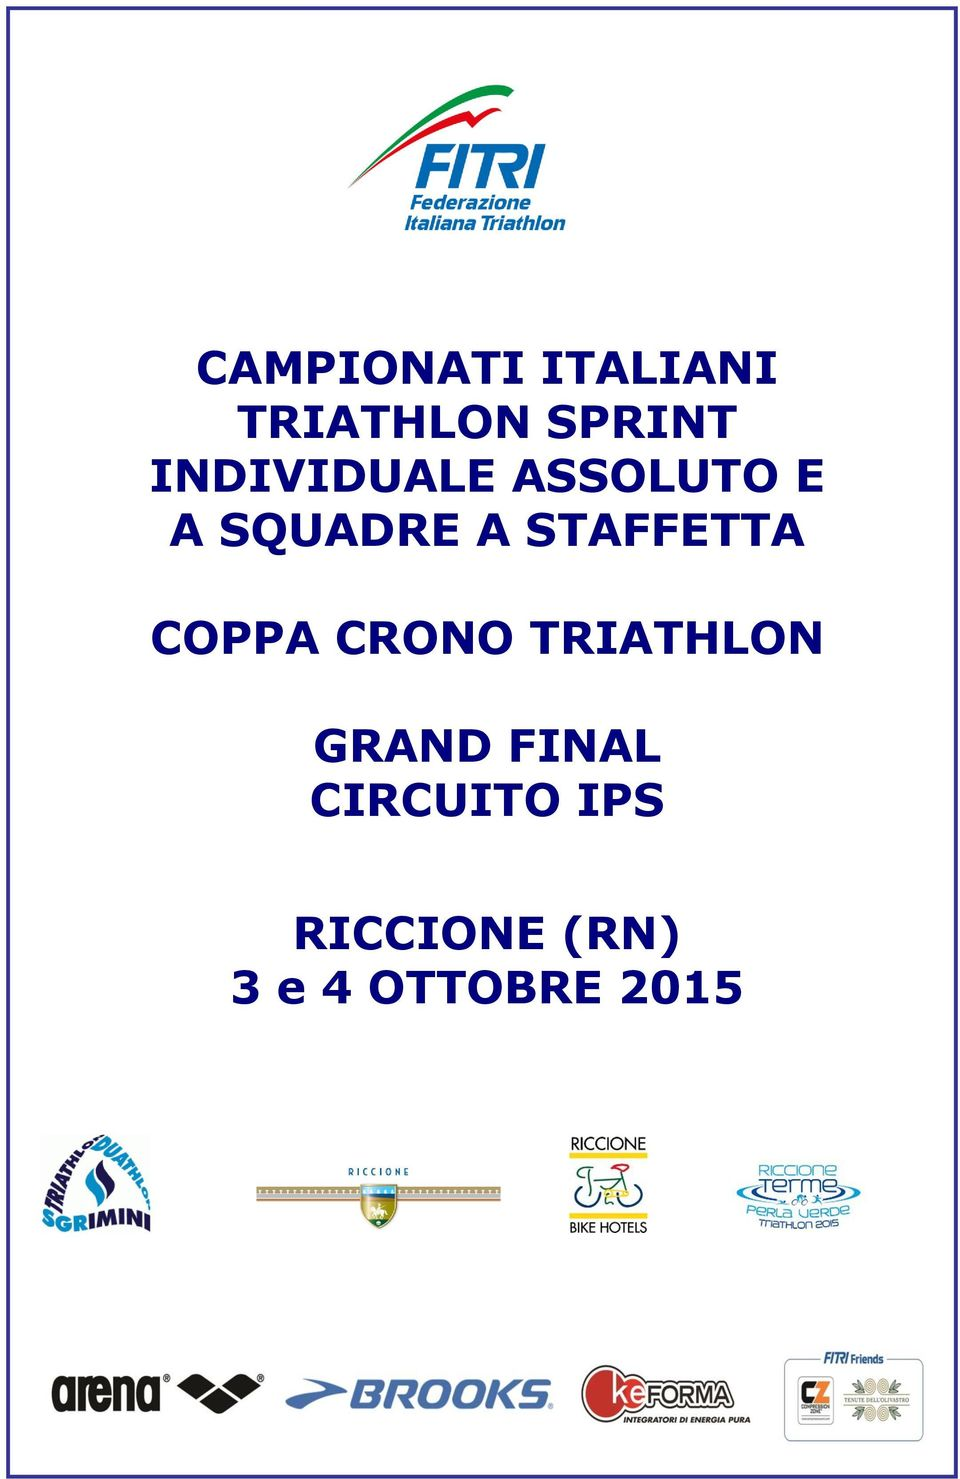 STAFFETTA COPPA CRONO TRIATHLON GRAND